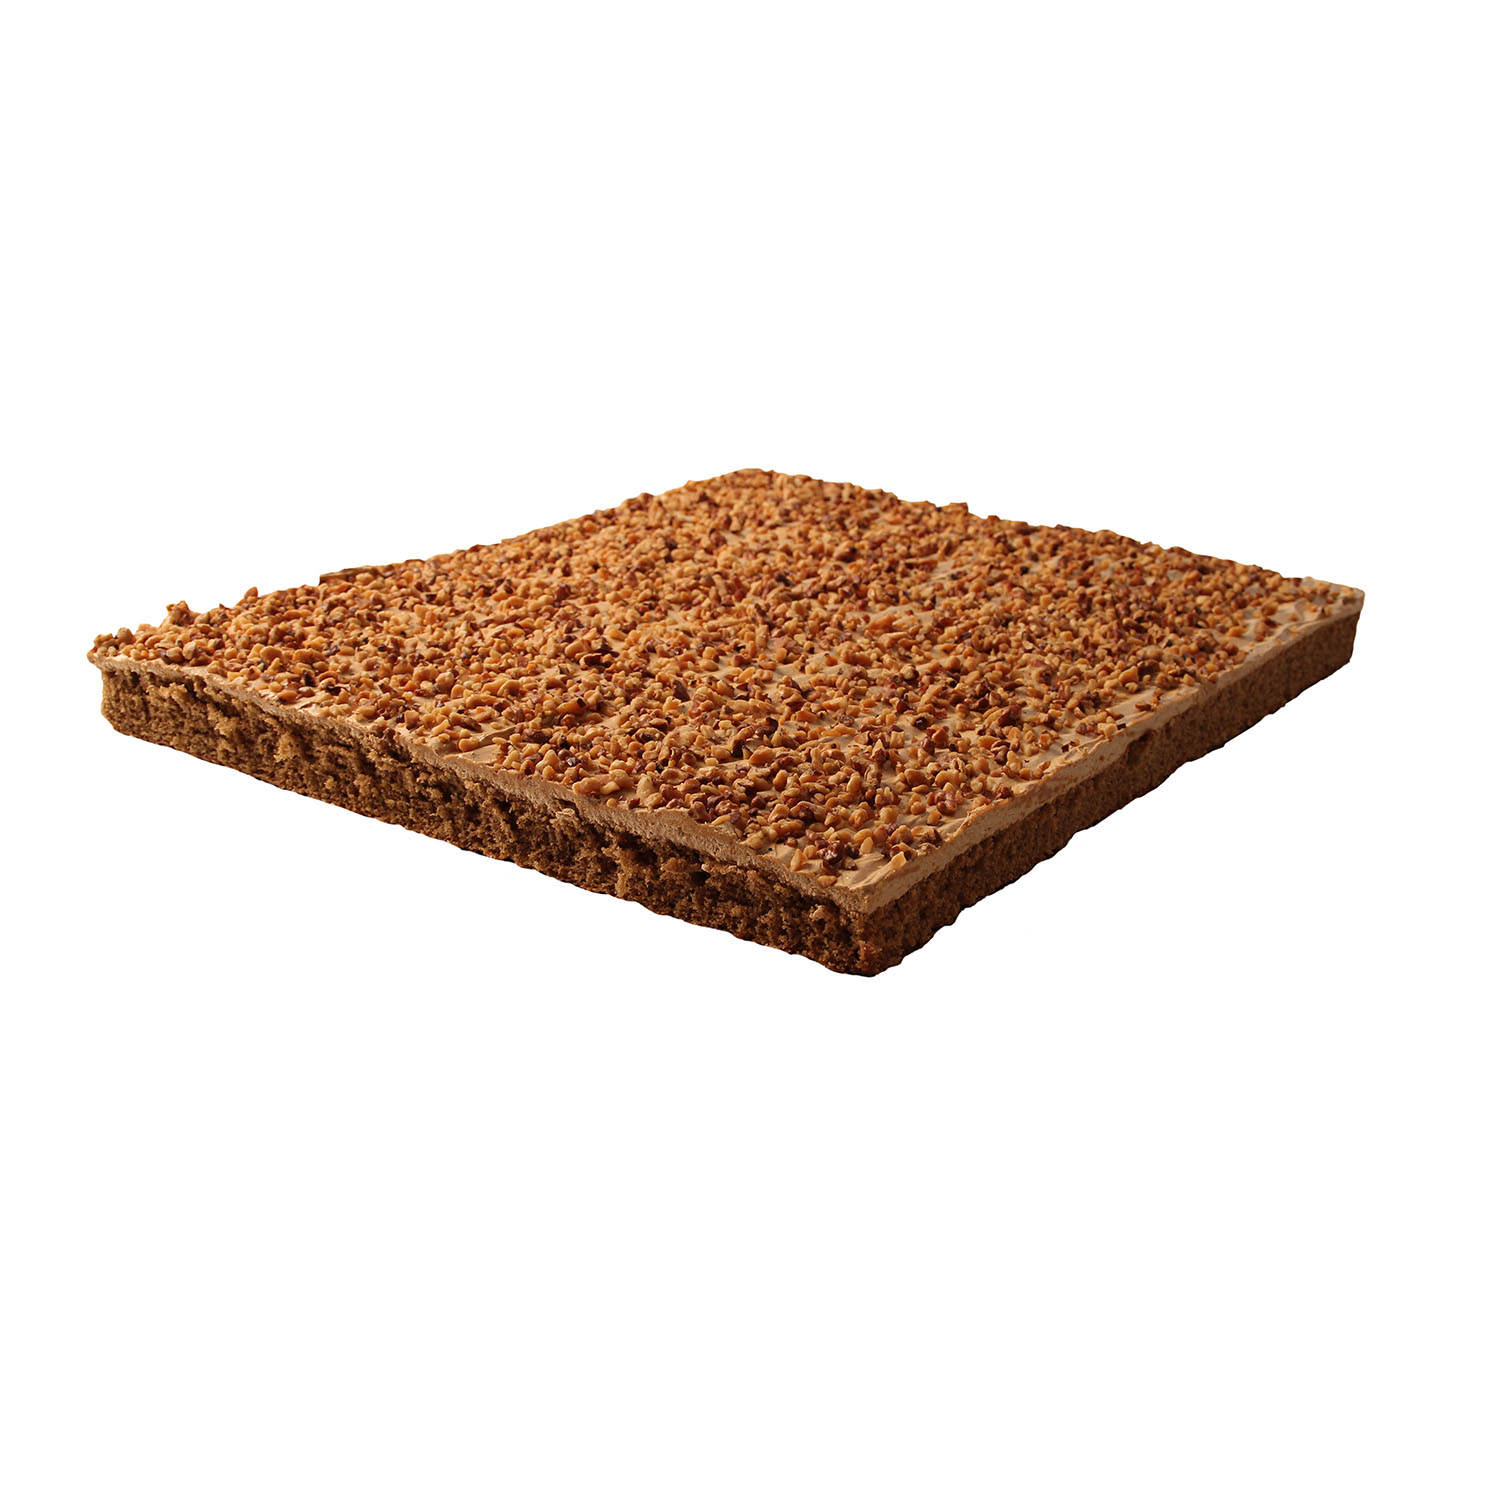 60313_coffee-walnut-tray-sliced-17x12